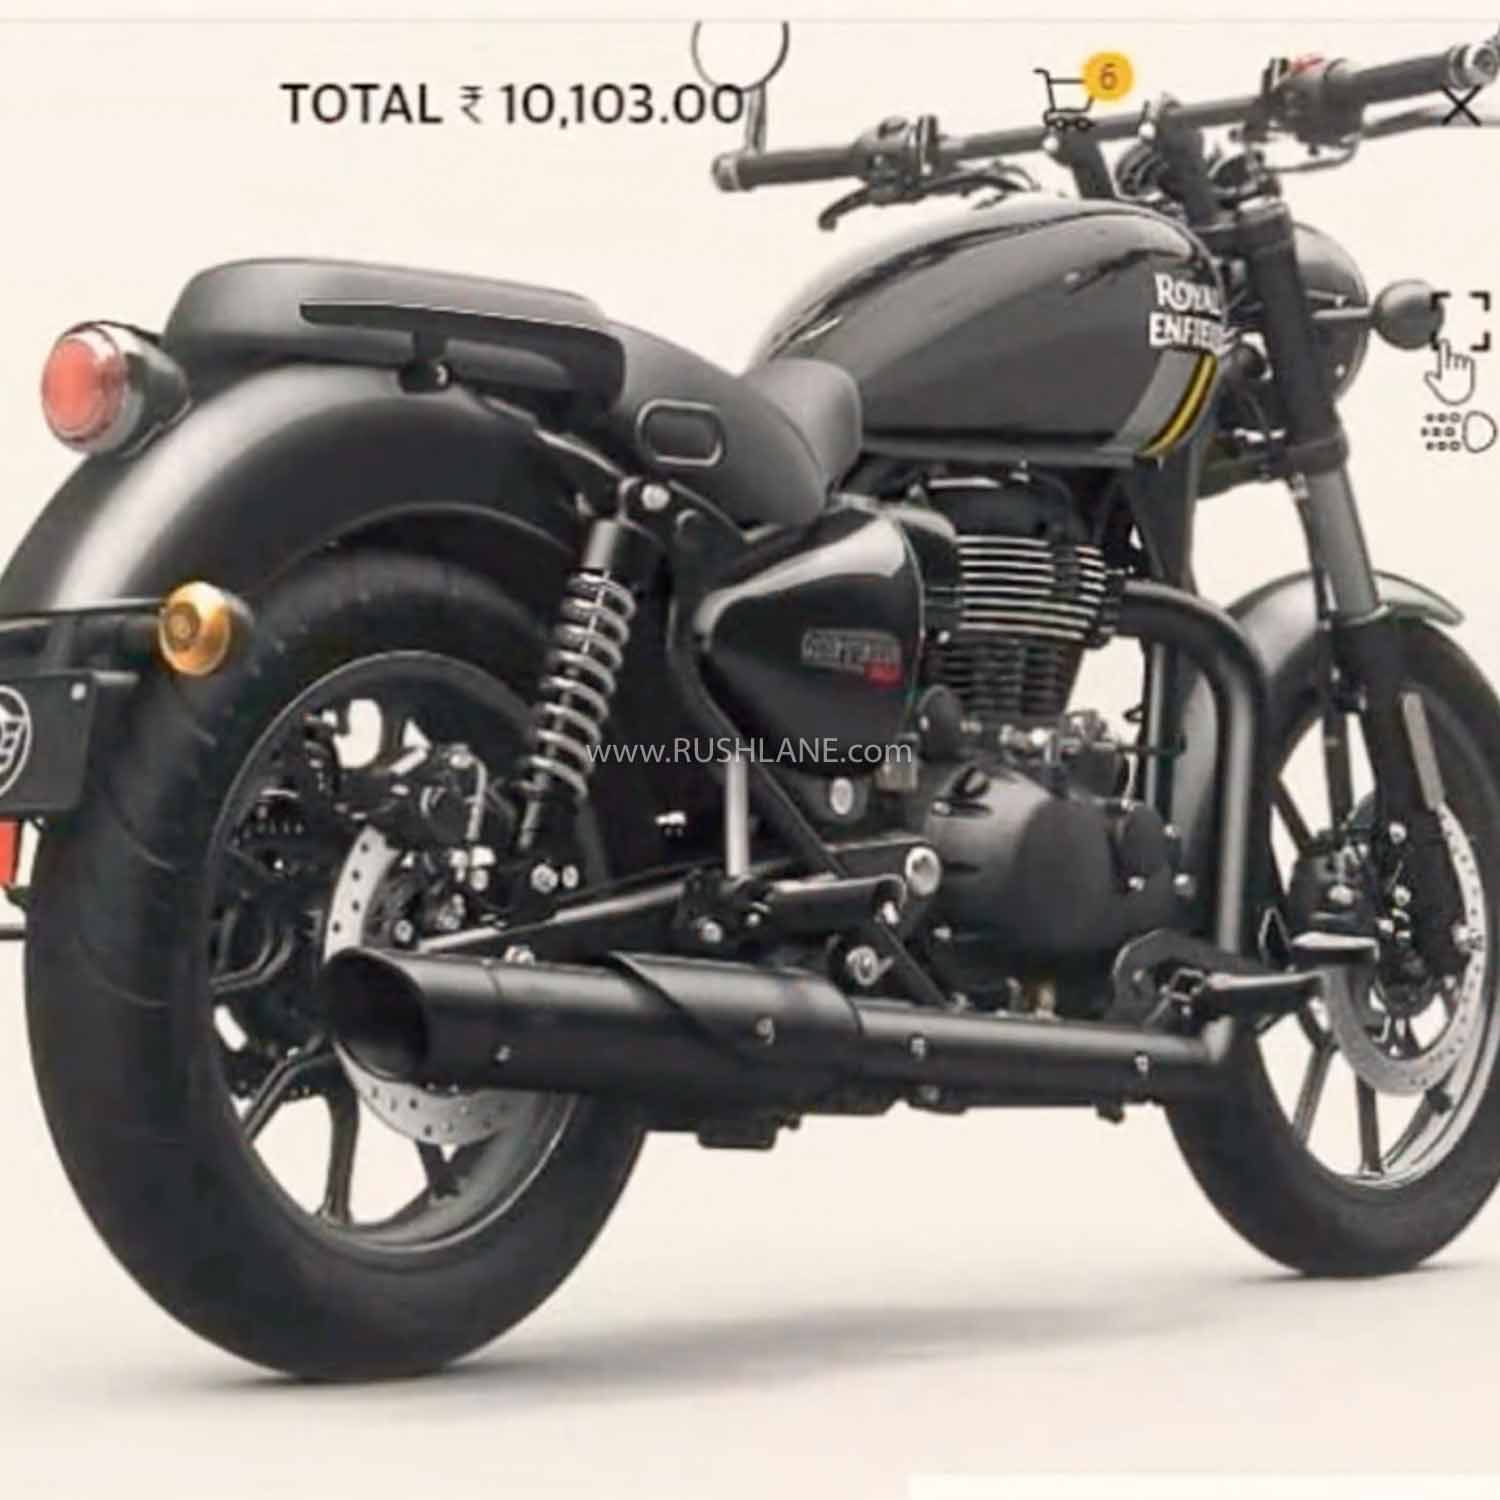 Accessorized Version of Royal Enfield Meteor 350